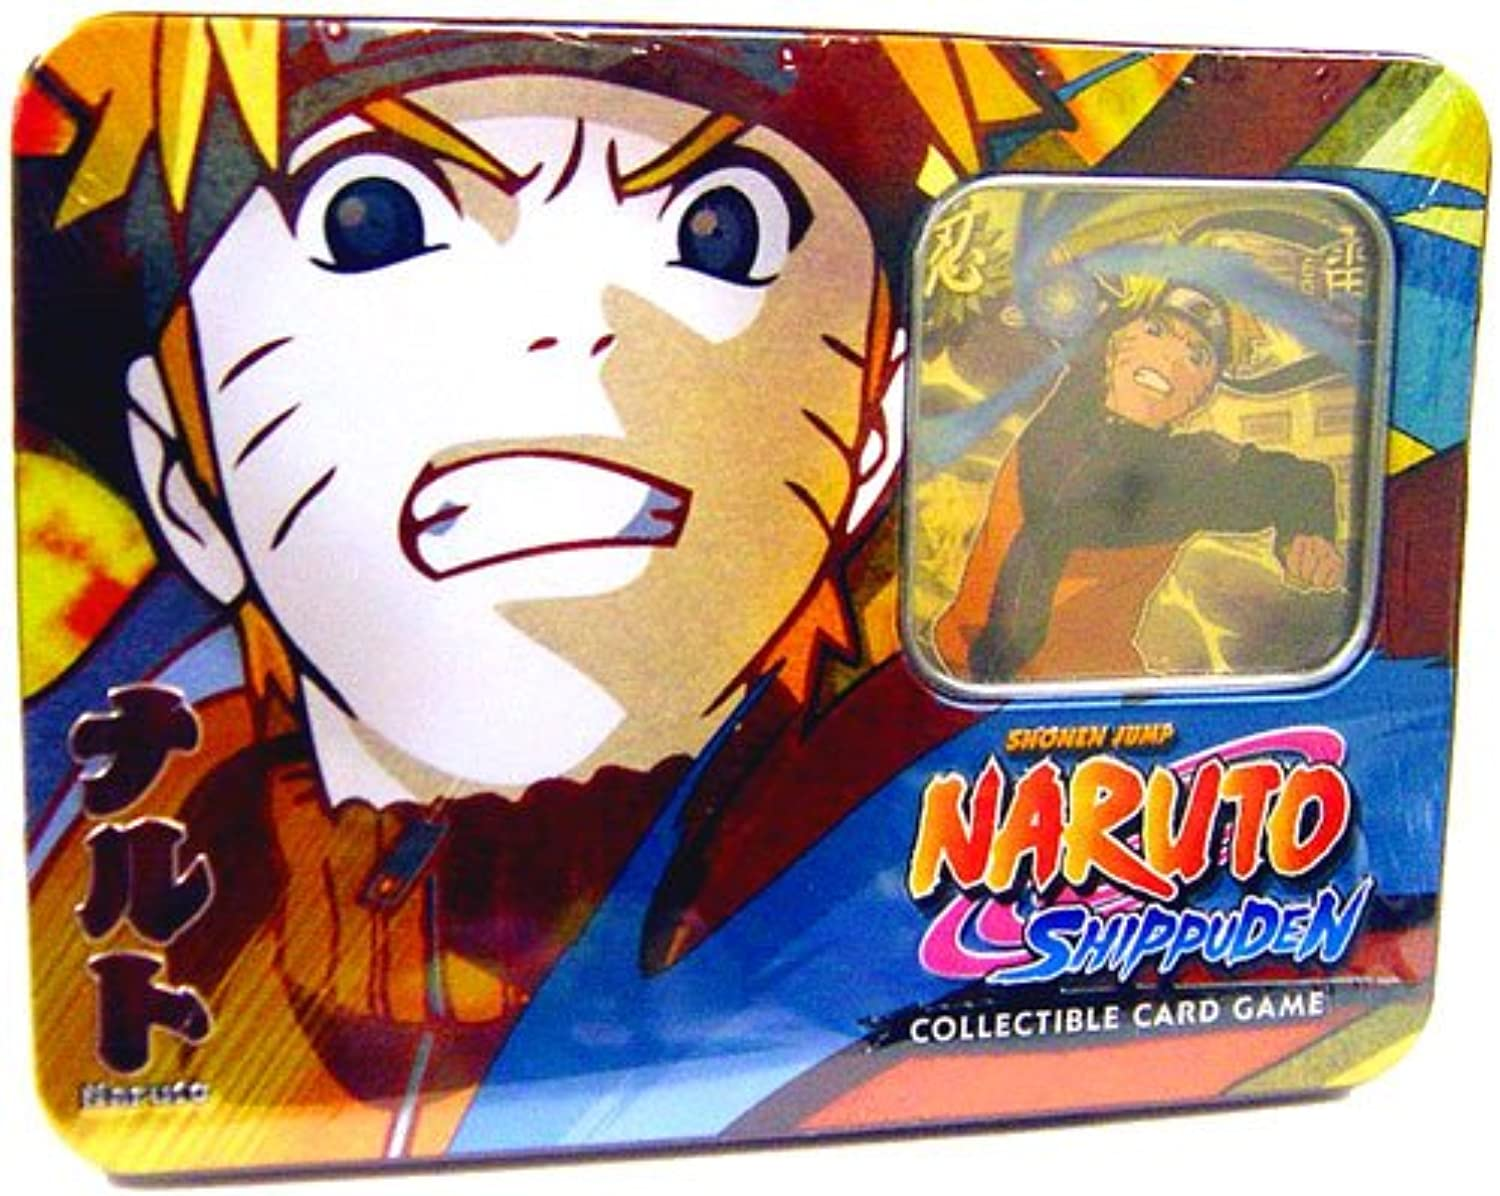 2009 Naruto CCG  Guardian of the Village Tin Collector Tin Set  Naruto Uzumaki - Great Gift